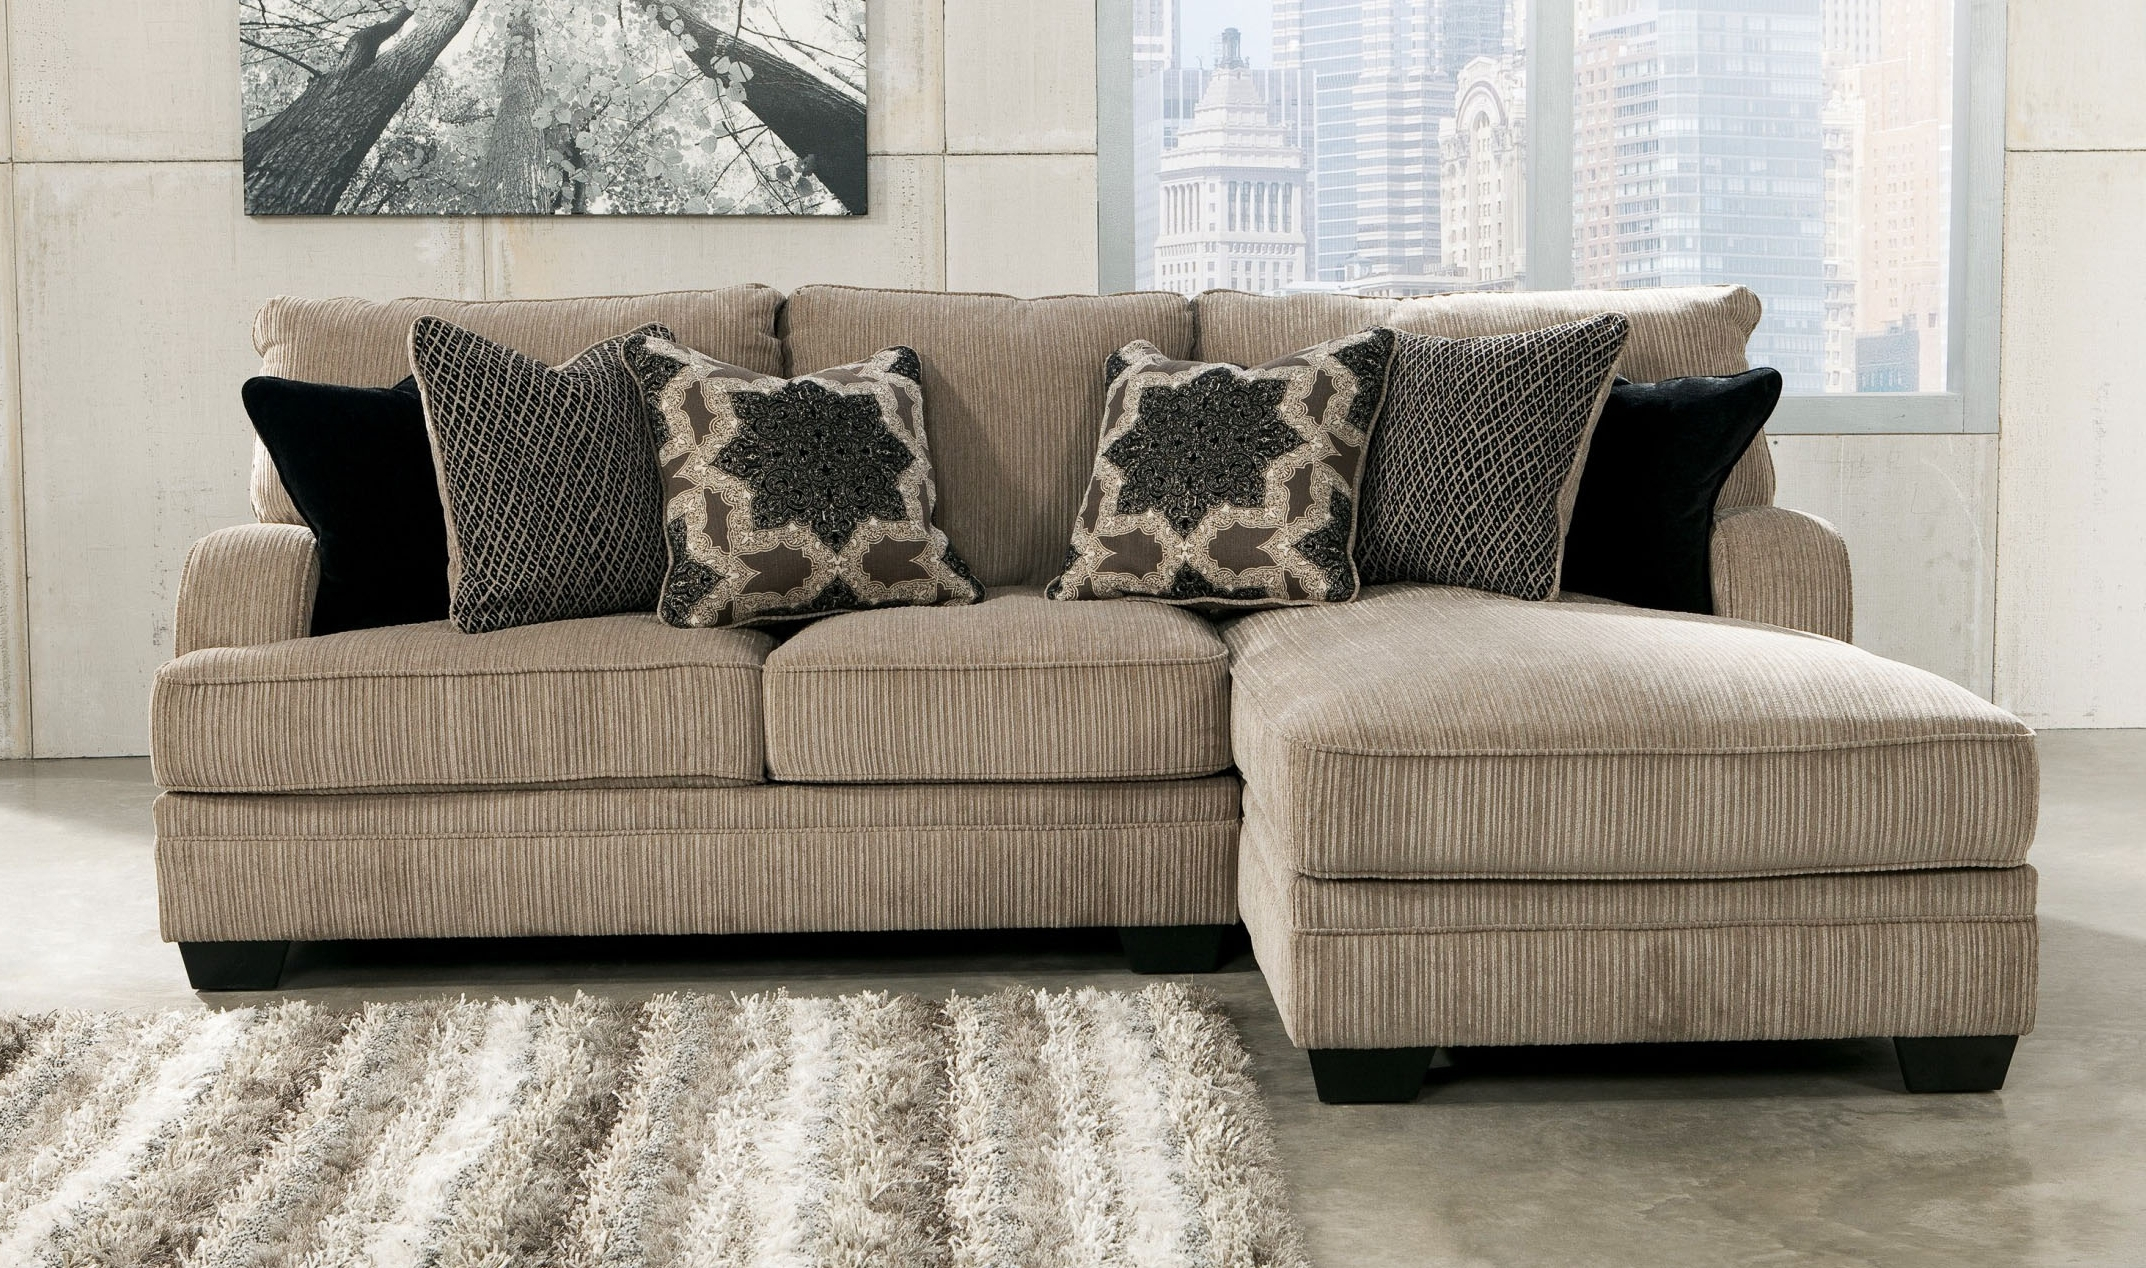 Sofa : Futon Sofa Bed Love Seat Sleeper Sofas Foldable Couch Bed Pertaining To Trendy Sectional Sofas With Recliners For Small Spaces (View 3 of 20)